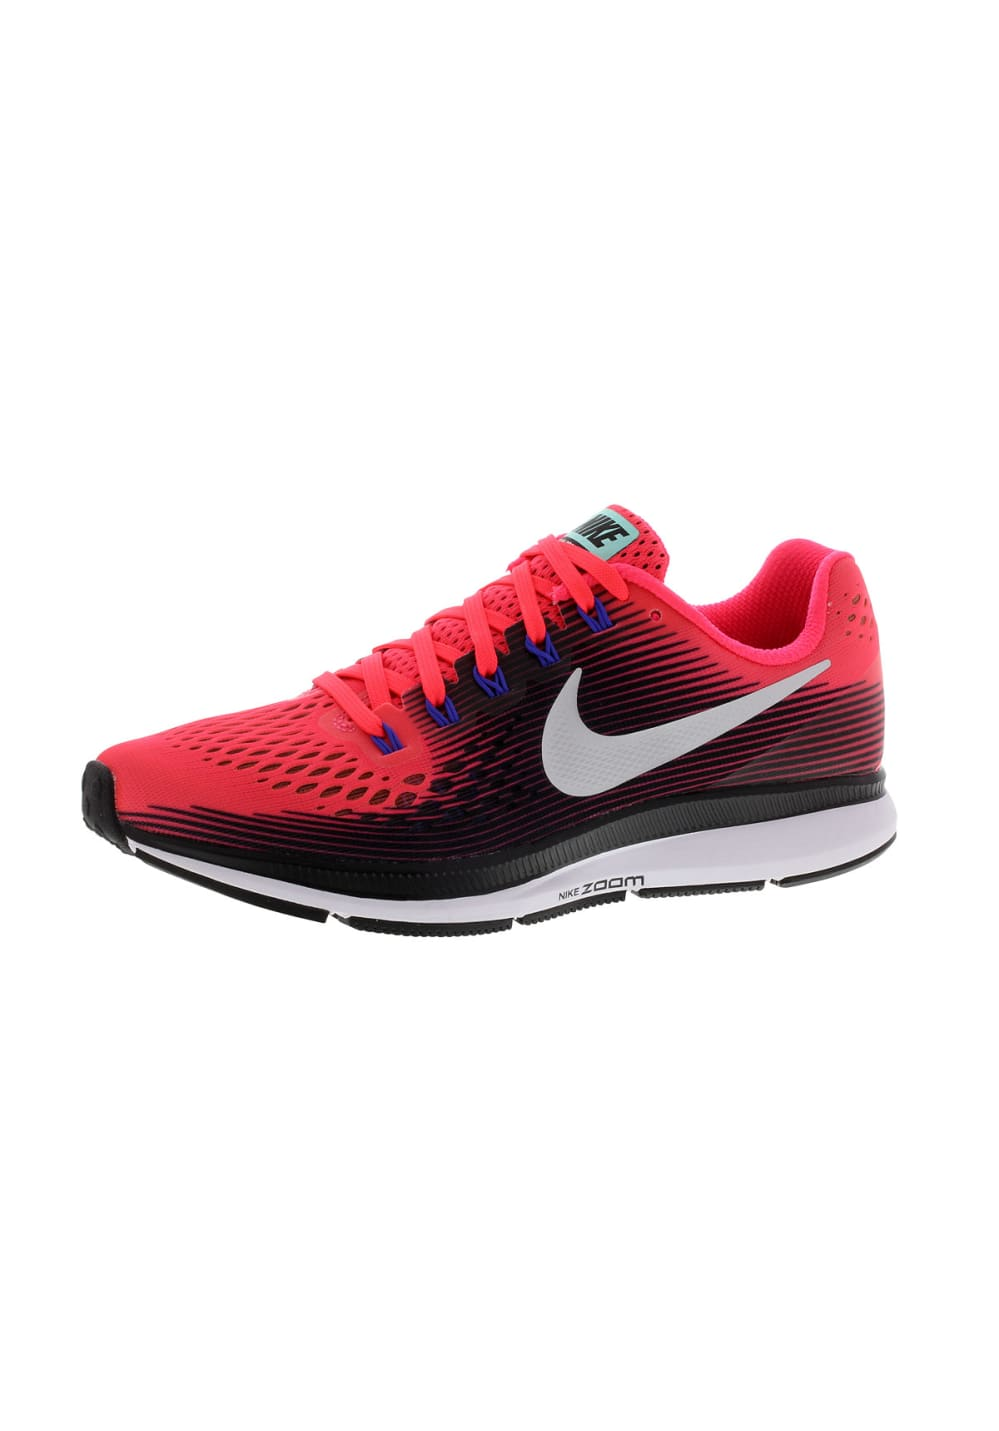 detailed look 7adc1 5aff7 Next. Nike. Air Zoom Pegasus 34 - Running shoes for Women